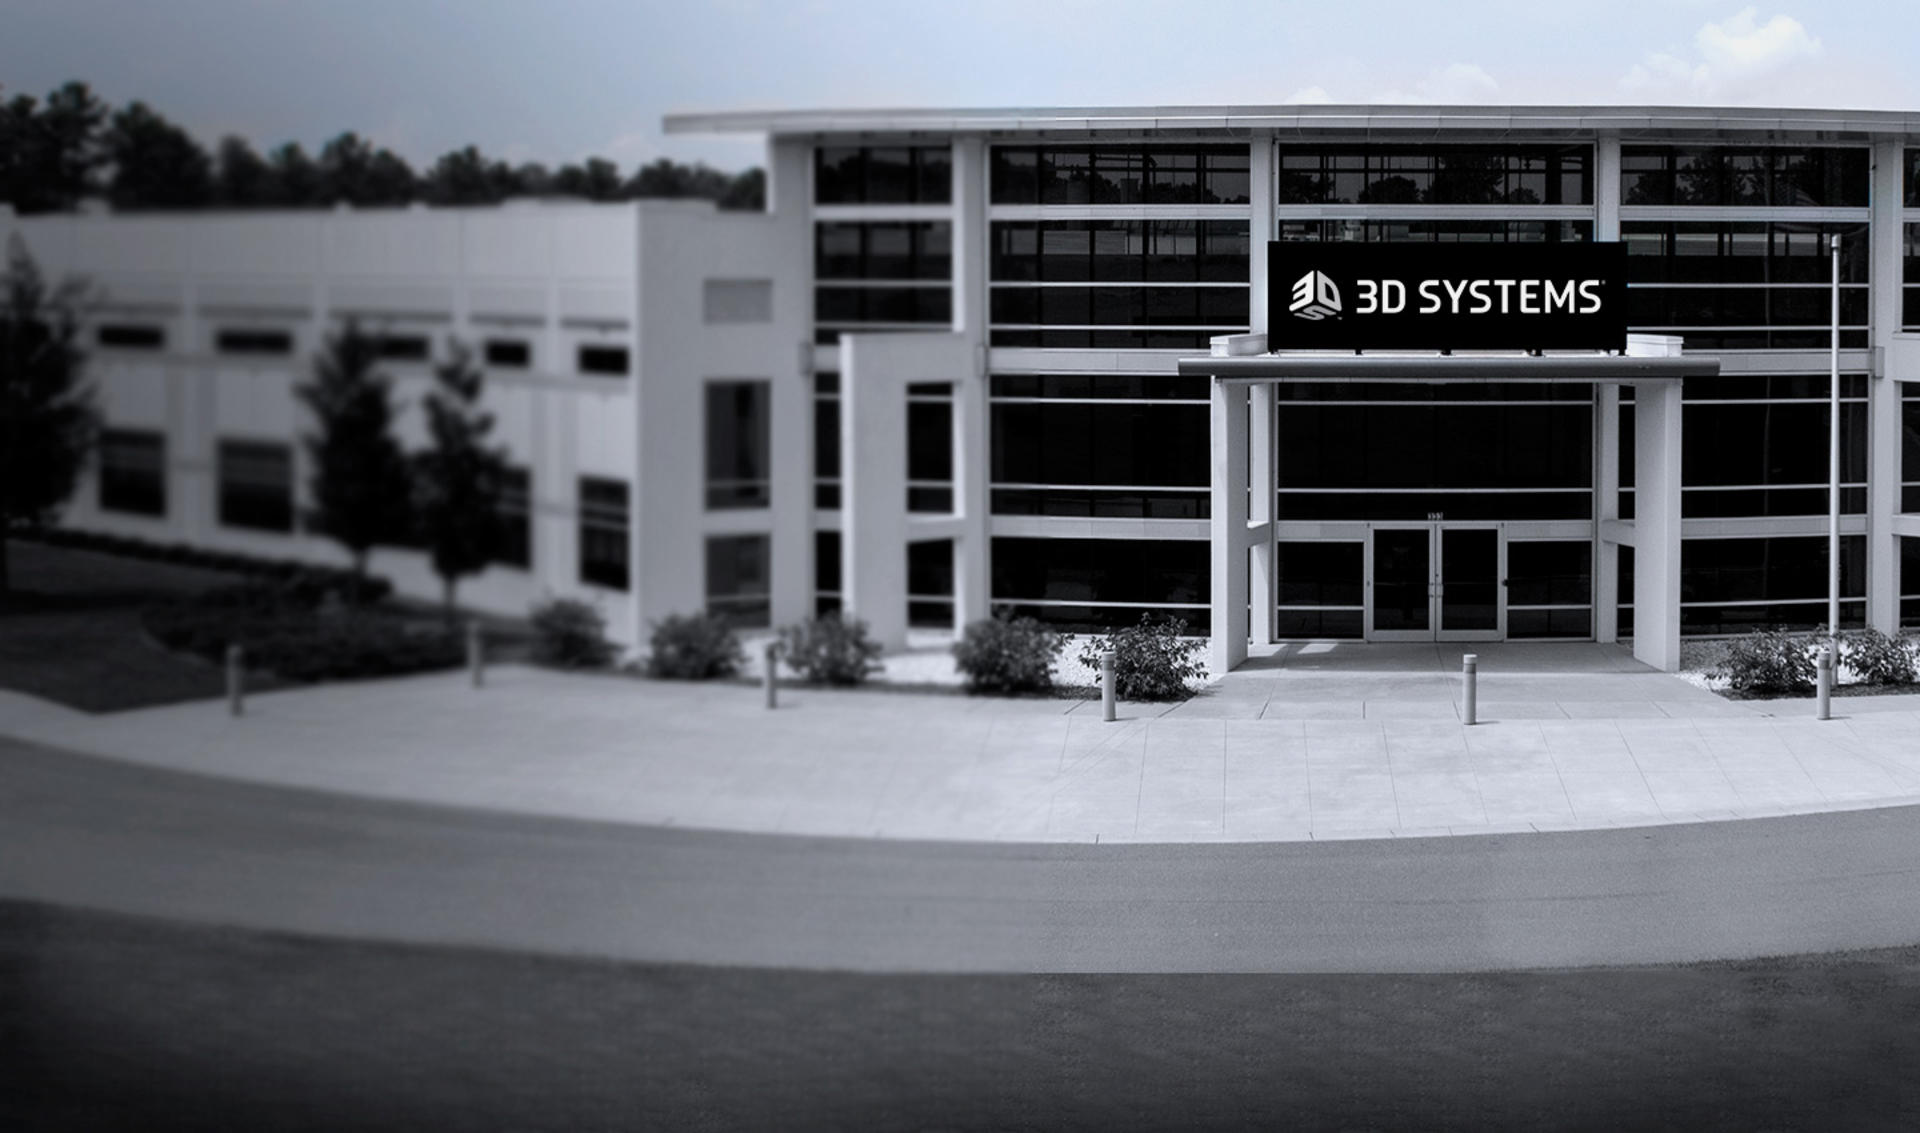 3D Systems Corporate office